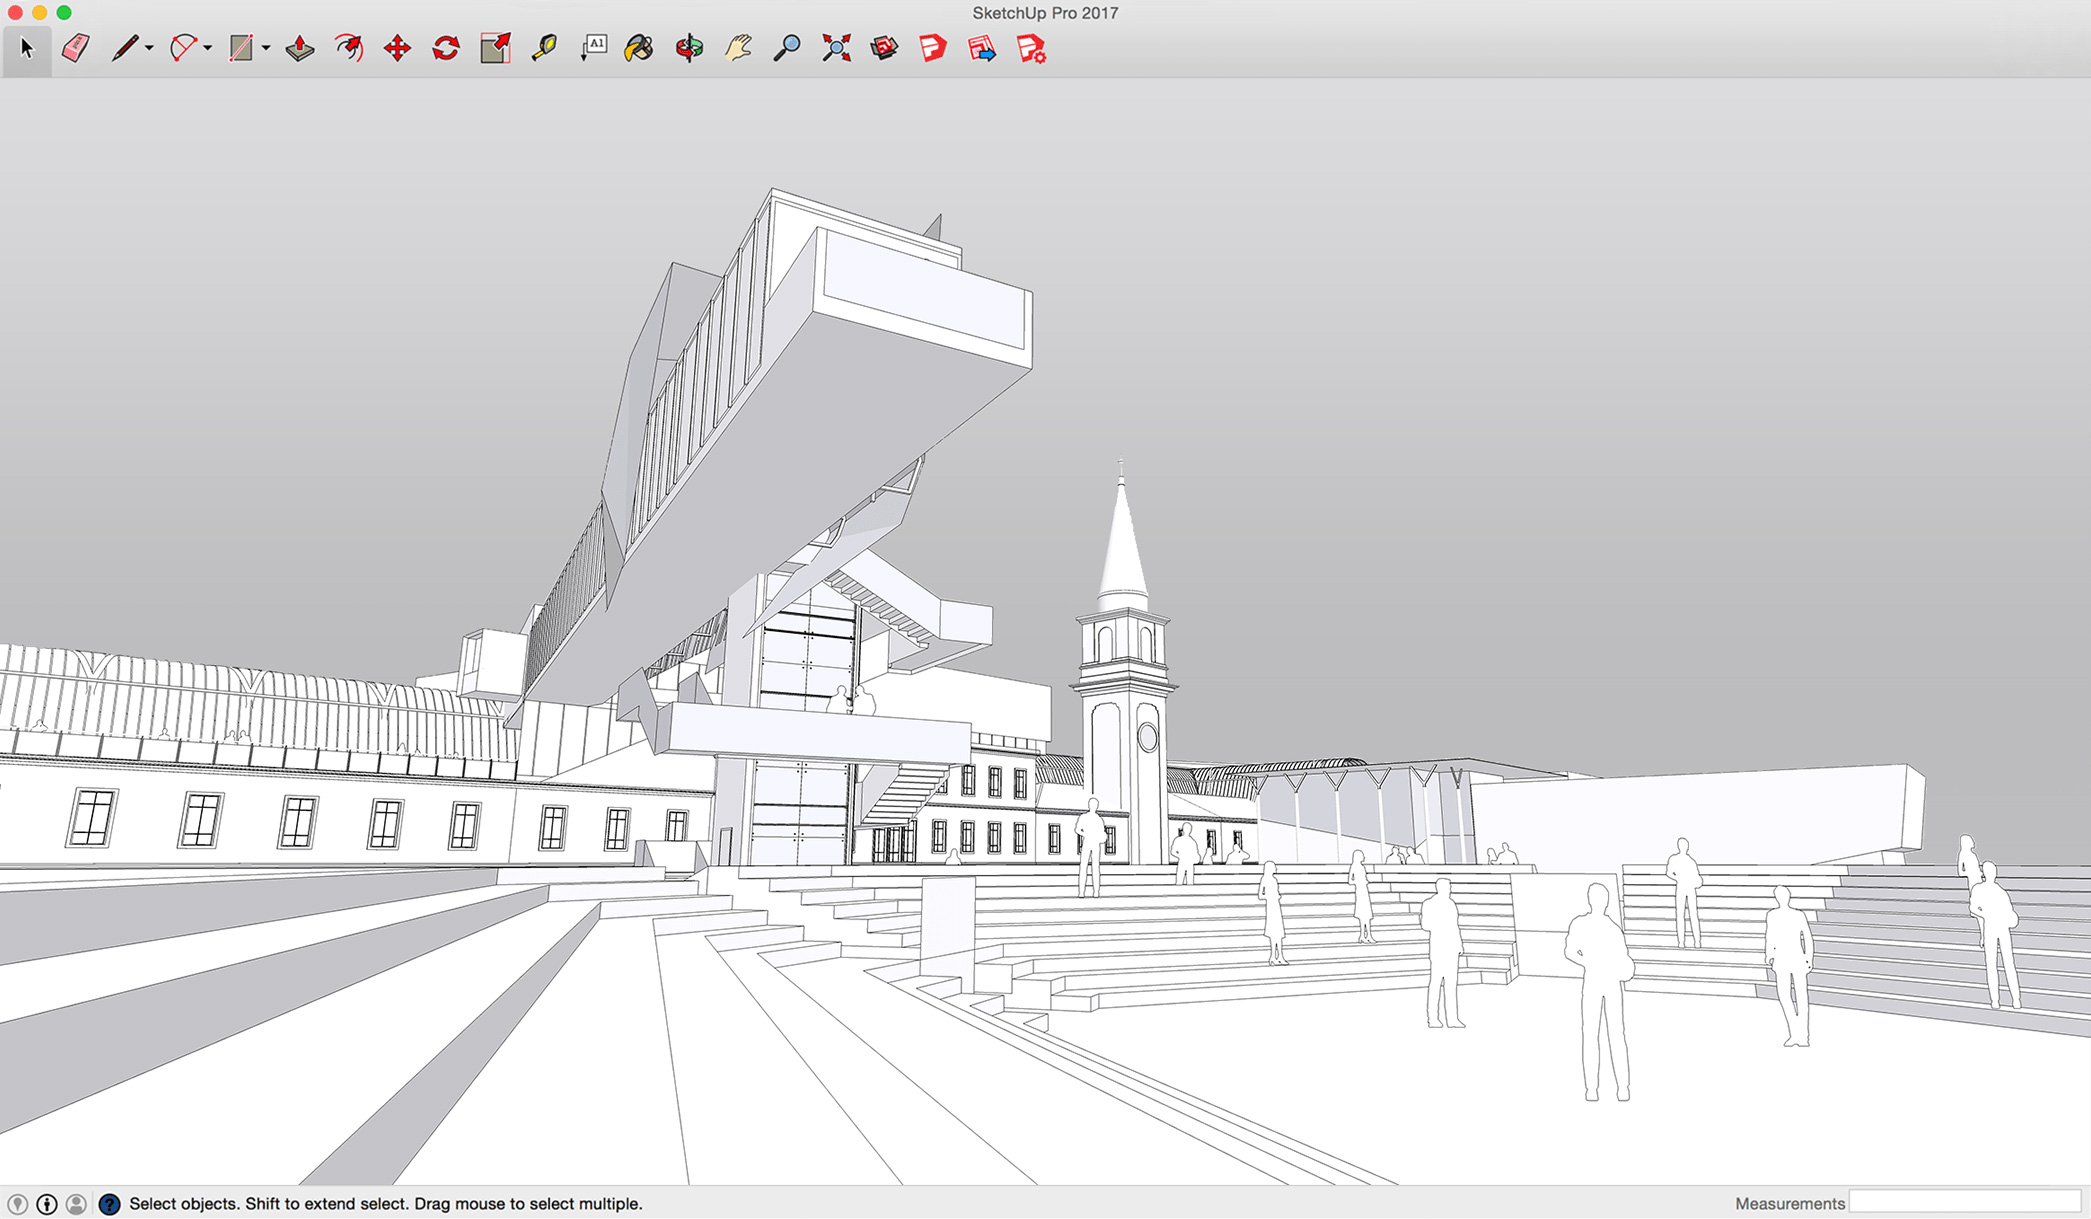 Sketchup pro new in 2017 sketchup for Architecture 2017